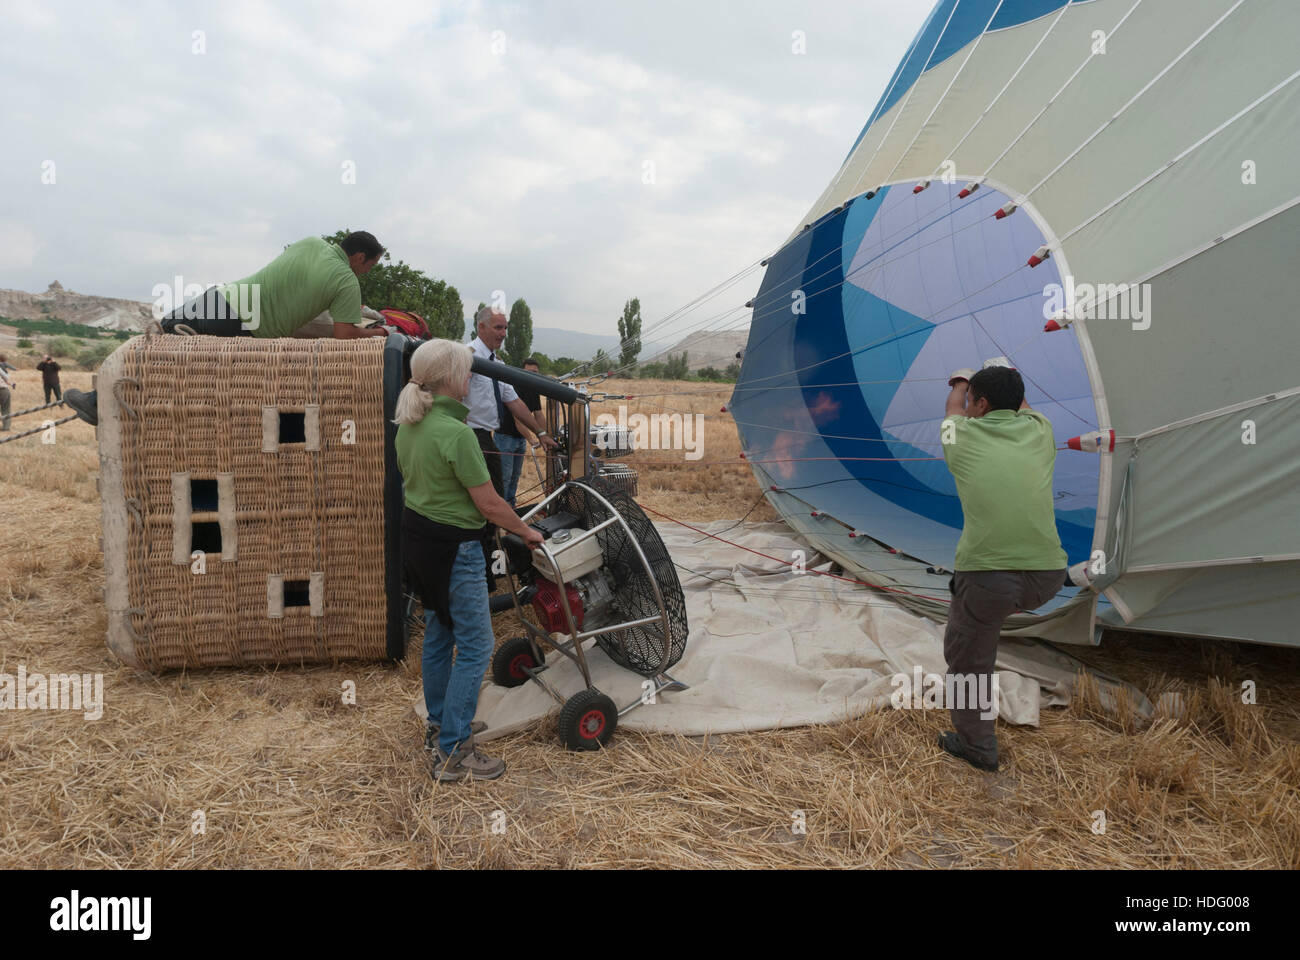 Ground crew preparing a hot air balloon for launch with a propane burner and power fan. - Stock Image